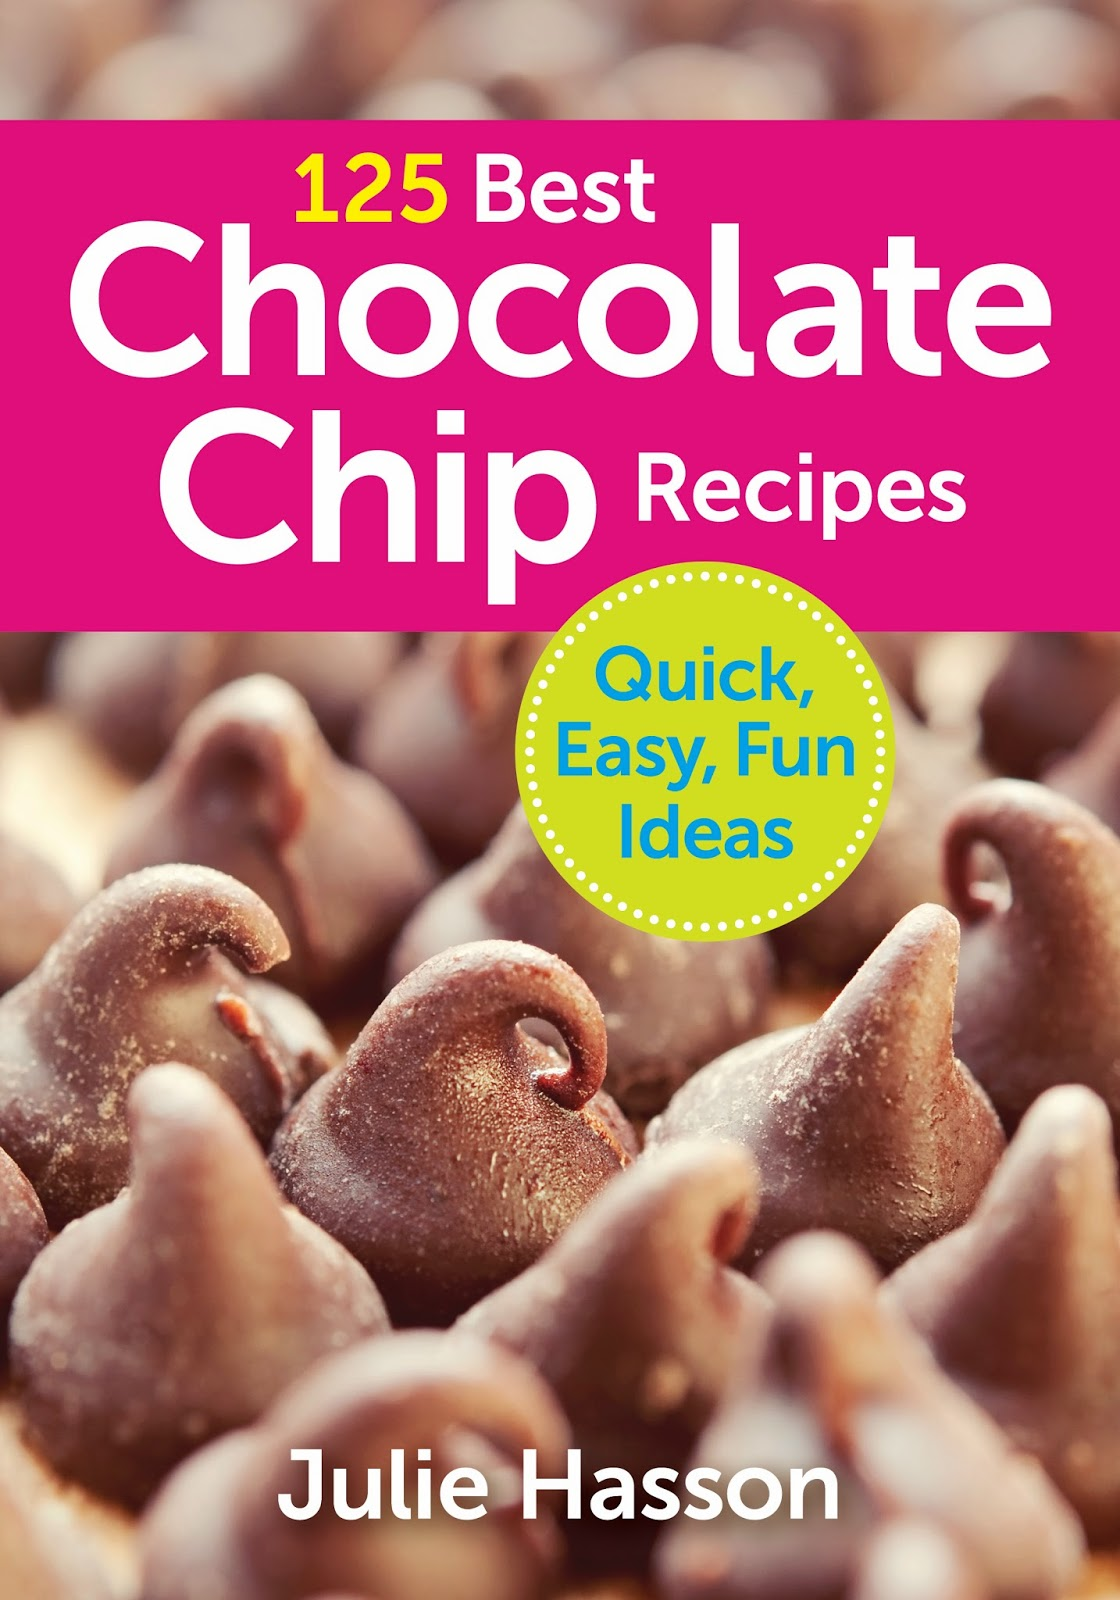 Review - 125 Best Chocolate Chip Recipes: Quick, Easy, Fun Ideas